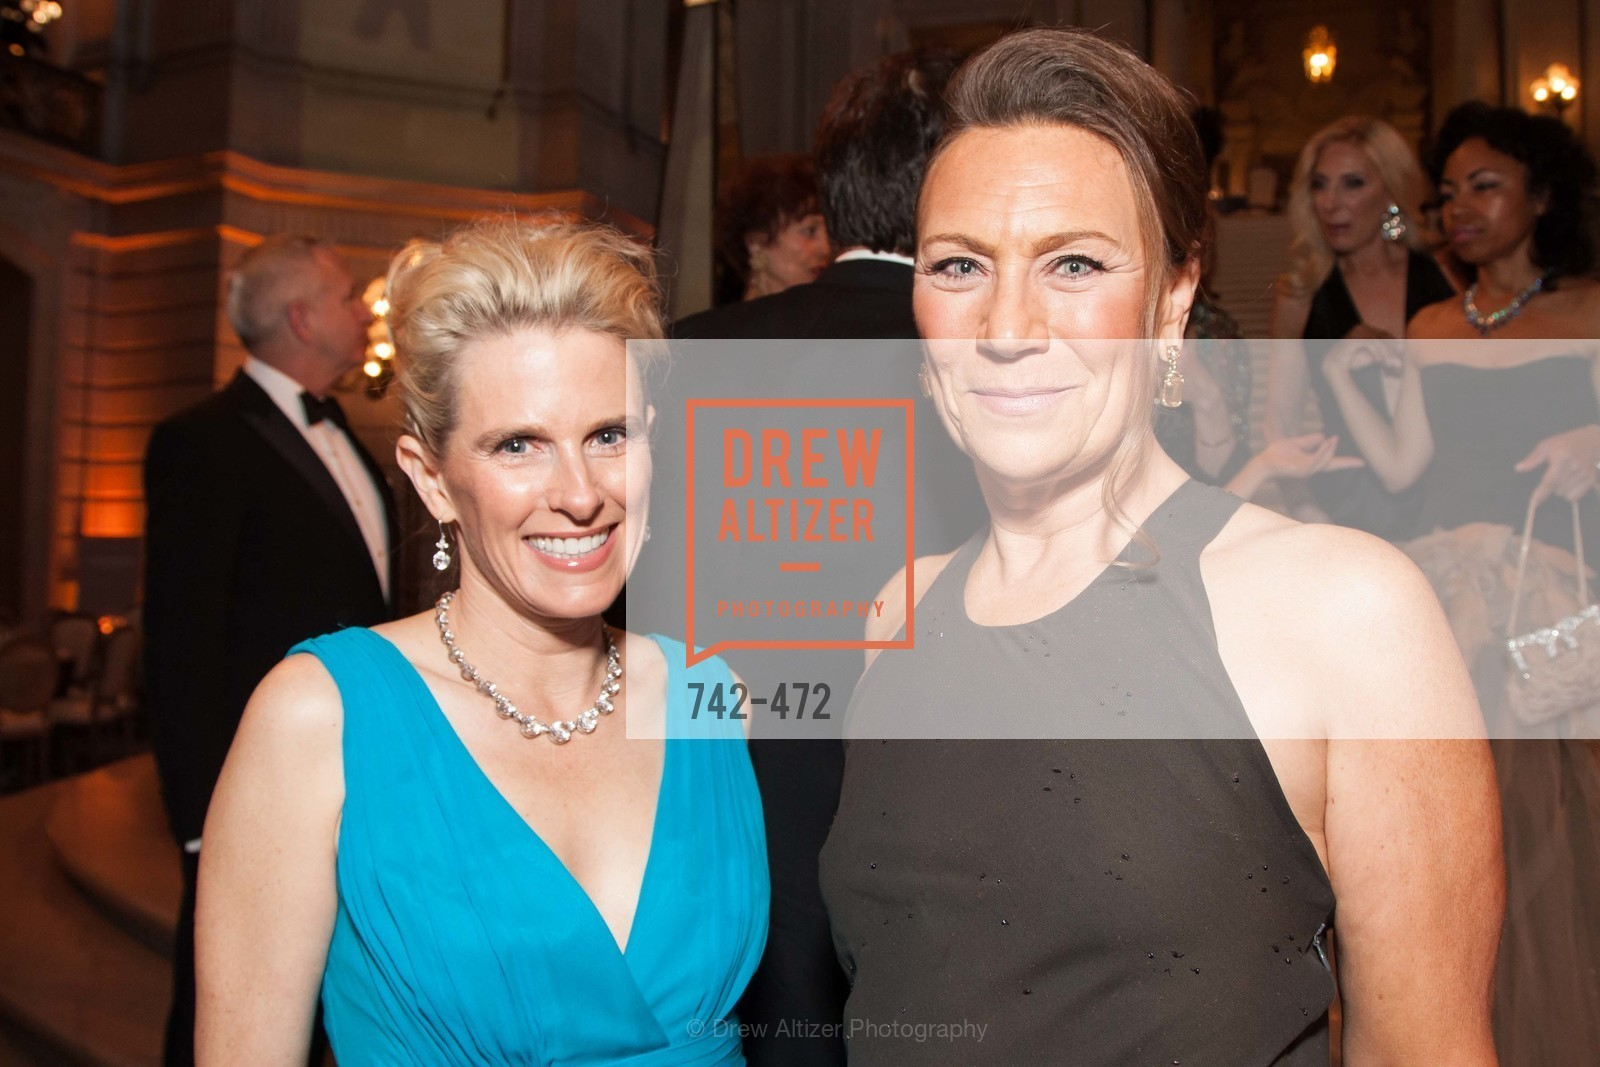 Marie Hurabiell, Carla Wytmar, SAN FRANCISCO BALLET Opening Night Gala: PHENOMENAL - Intermission & Dinner, US. SF City Hall, January 22nd, 2014,Drew Altizer, Drew Altizer Photography, full-service agency, private events, San Francisco photographer, photographer california